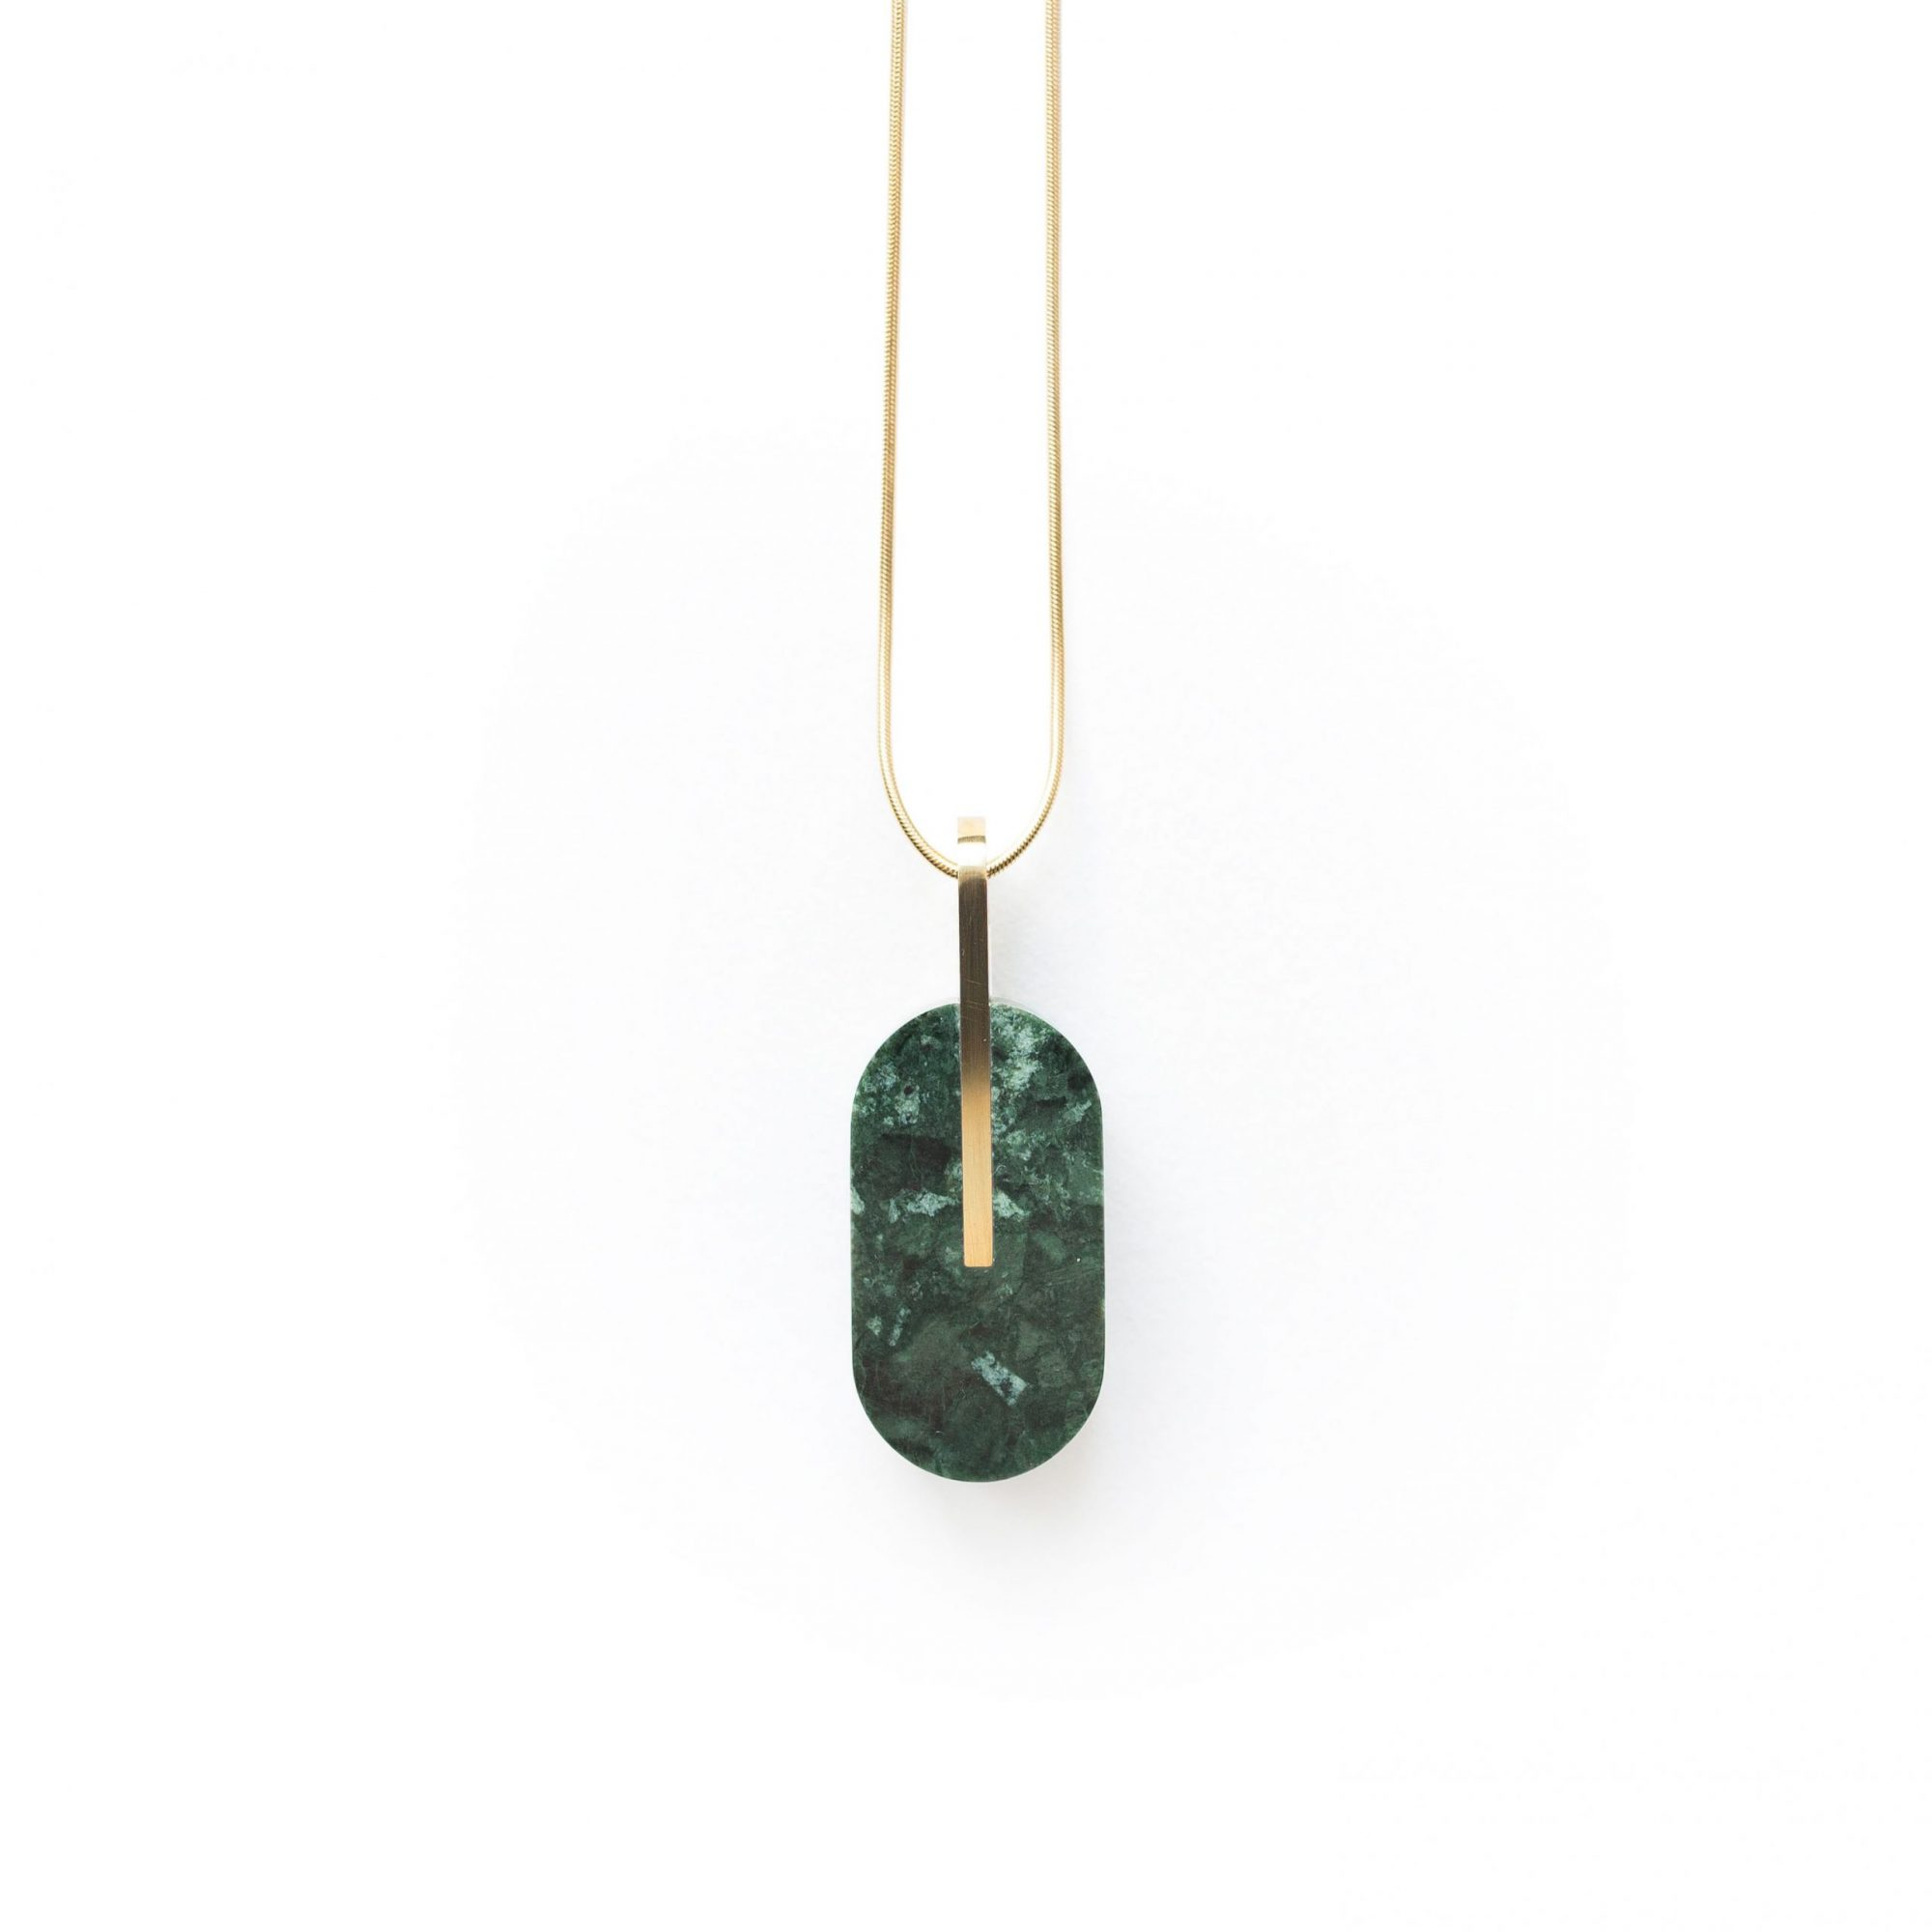 metaformi_design_jewelry_essential_oval_verde